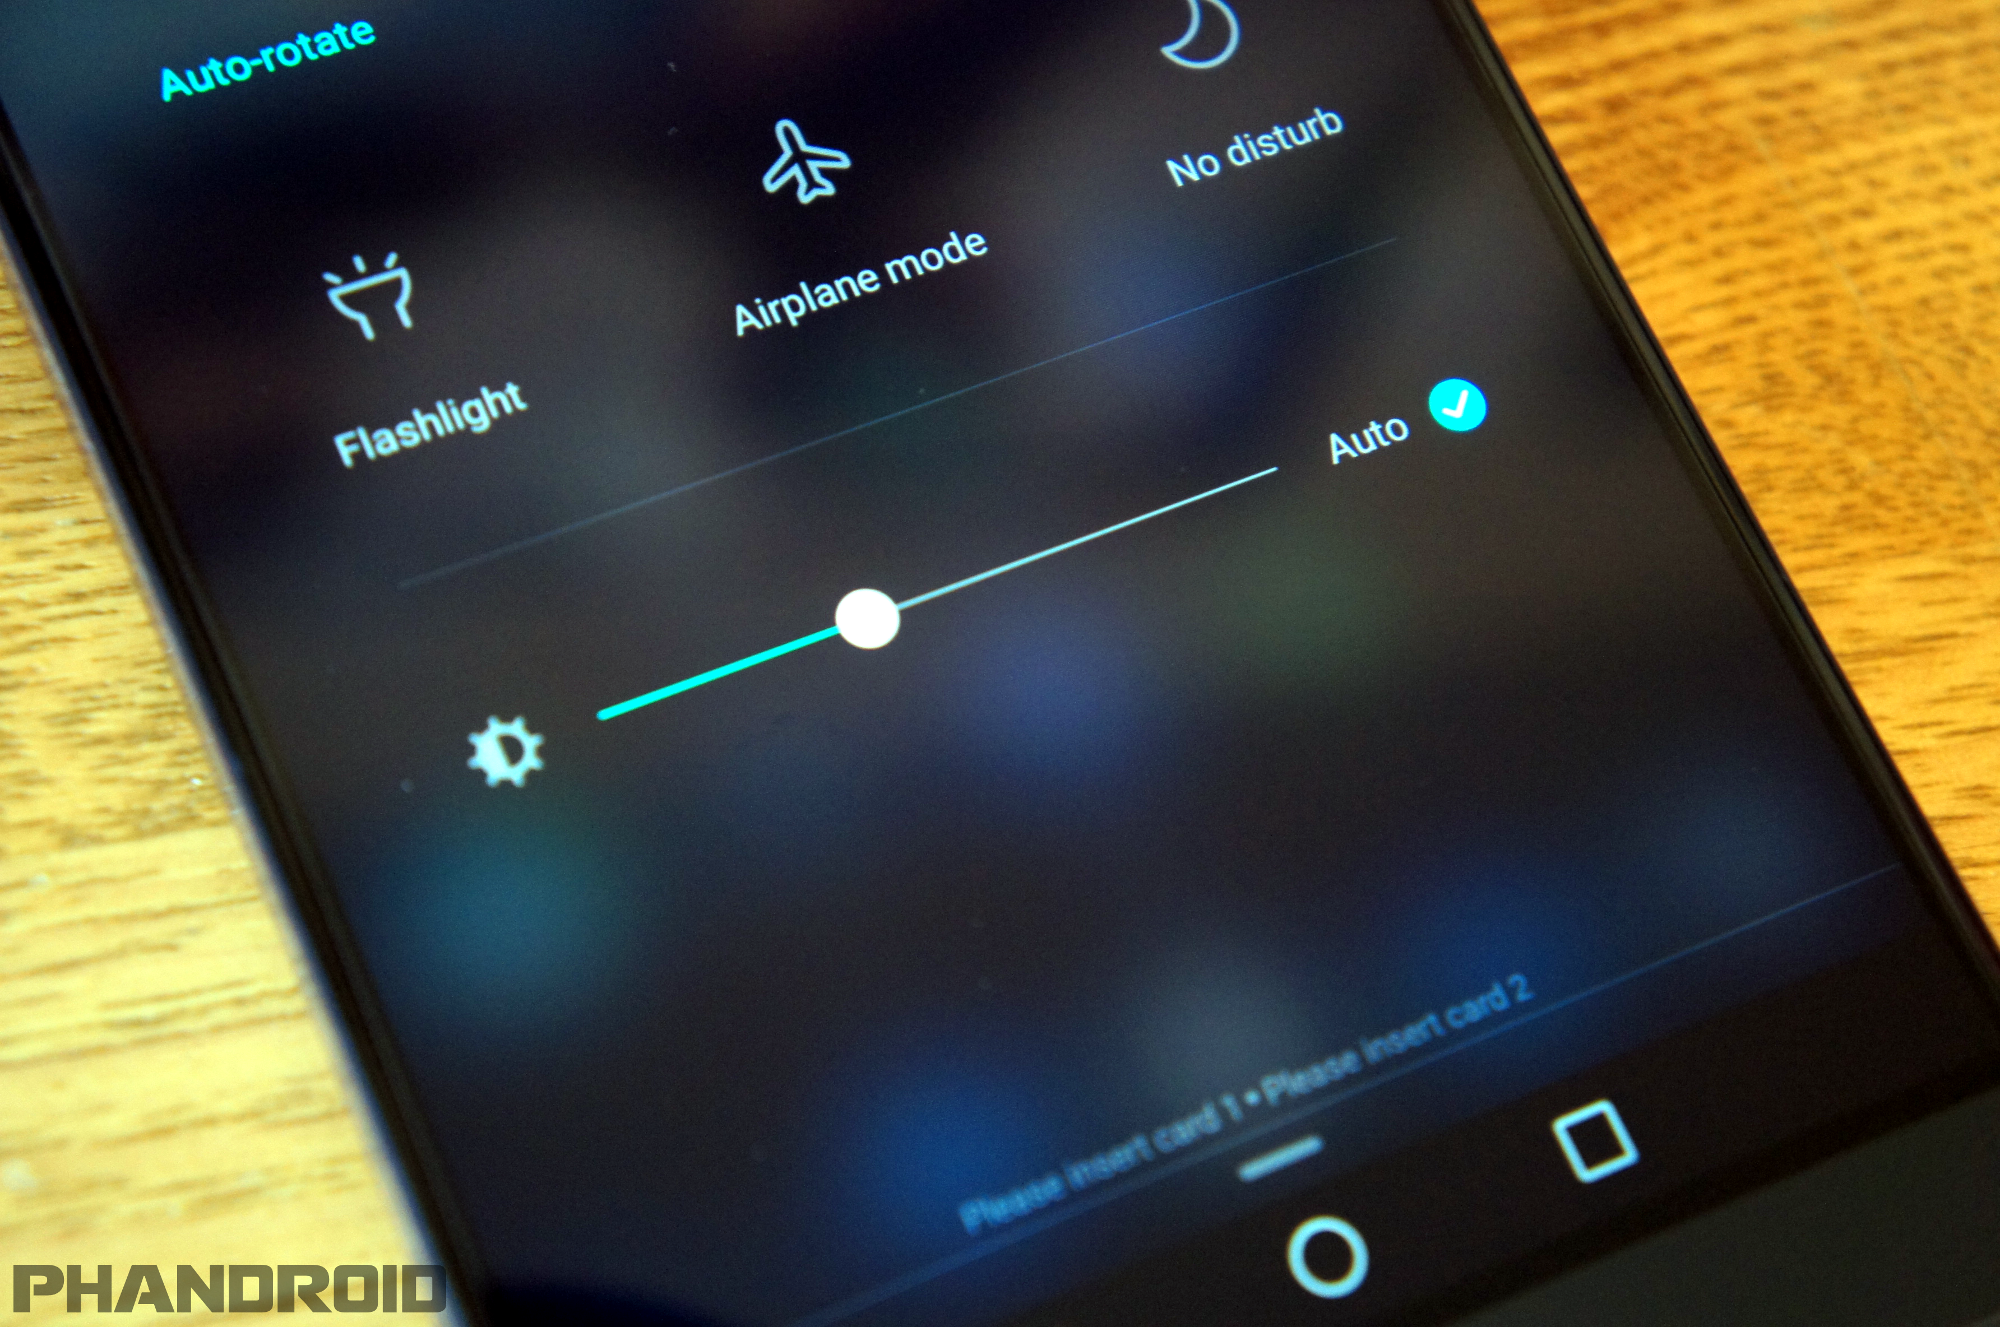 Tips Extending Android Battery Life Auto Brightness